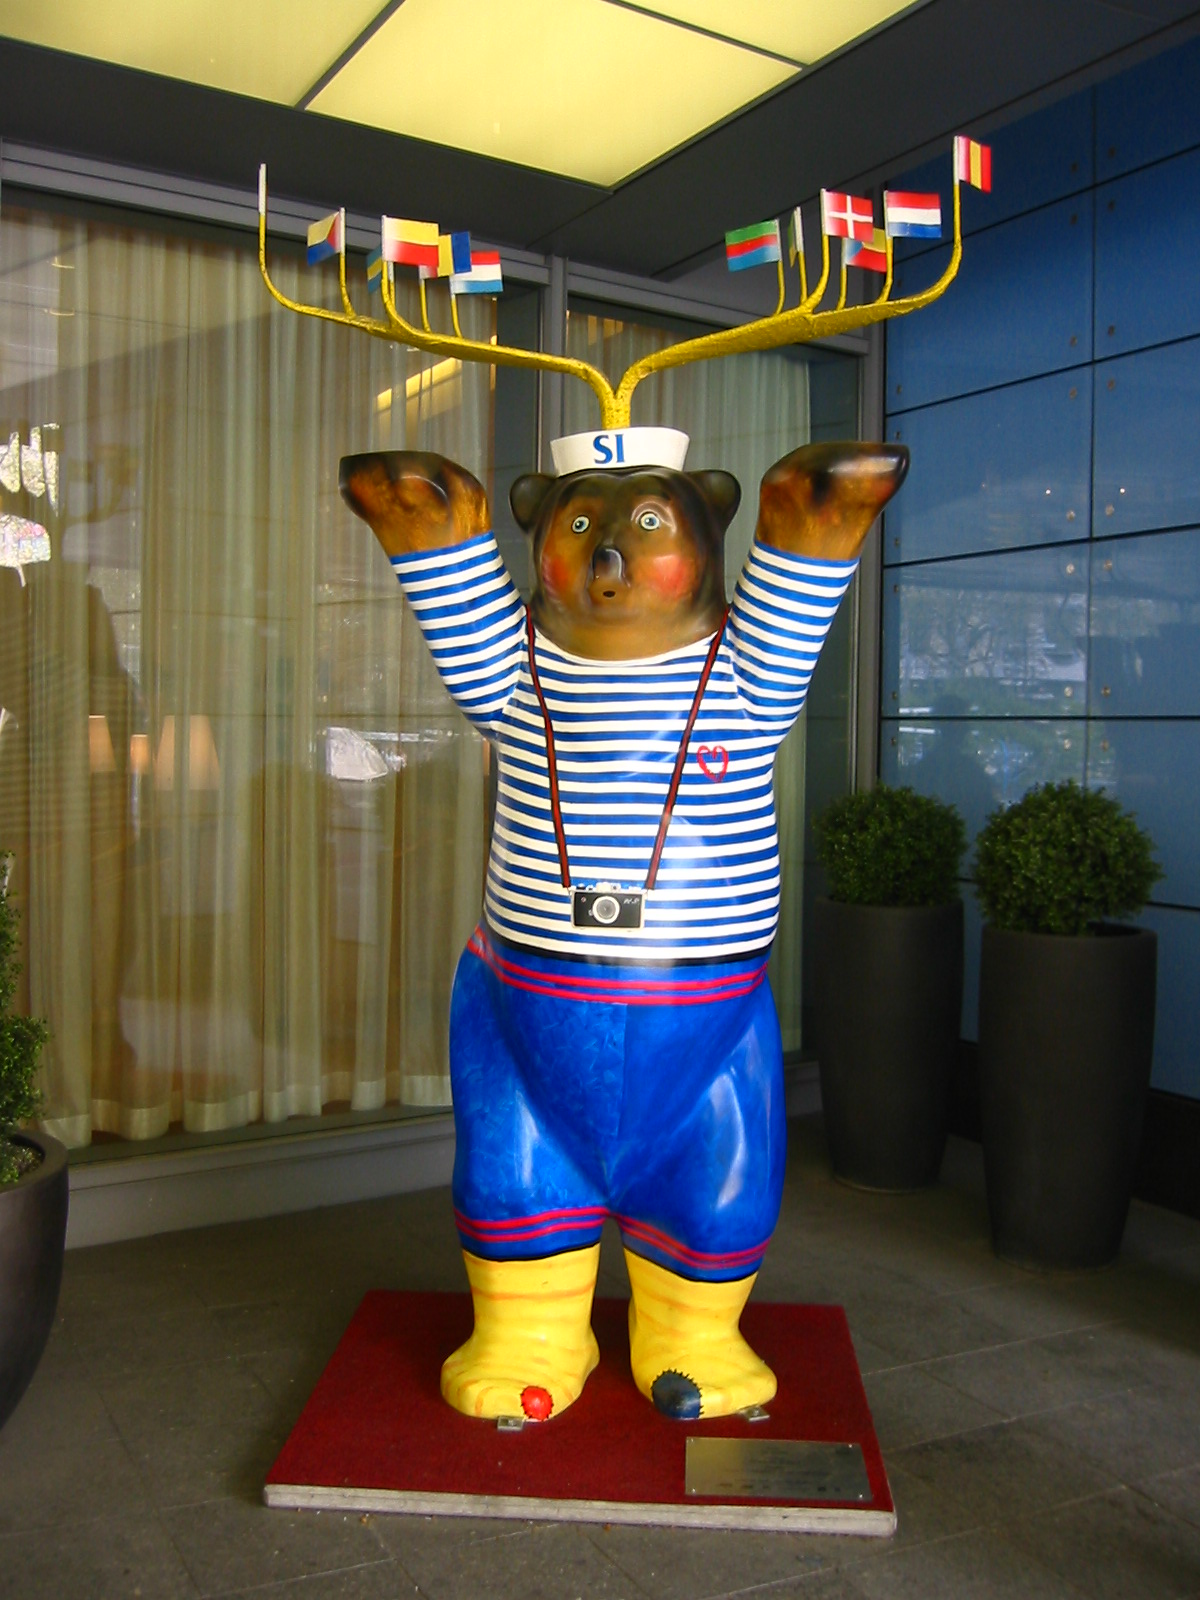 Buddy Bear: SI Bär (former Air Bär). Standort/Location: in front of Best Western Hotel Steglitz International, Albrechtstr. 2, Berlin-Steglitz. Urheber: Wikimedia Commons User: BLueFiSH.as.